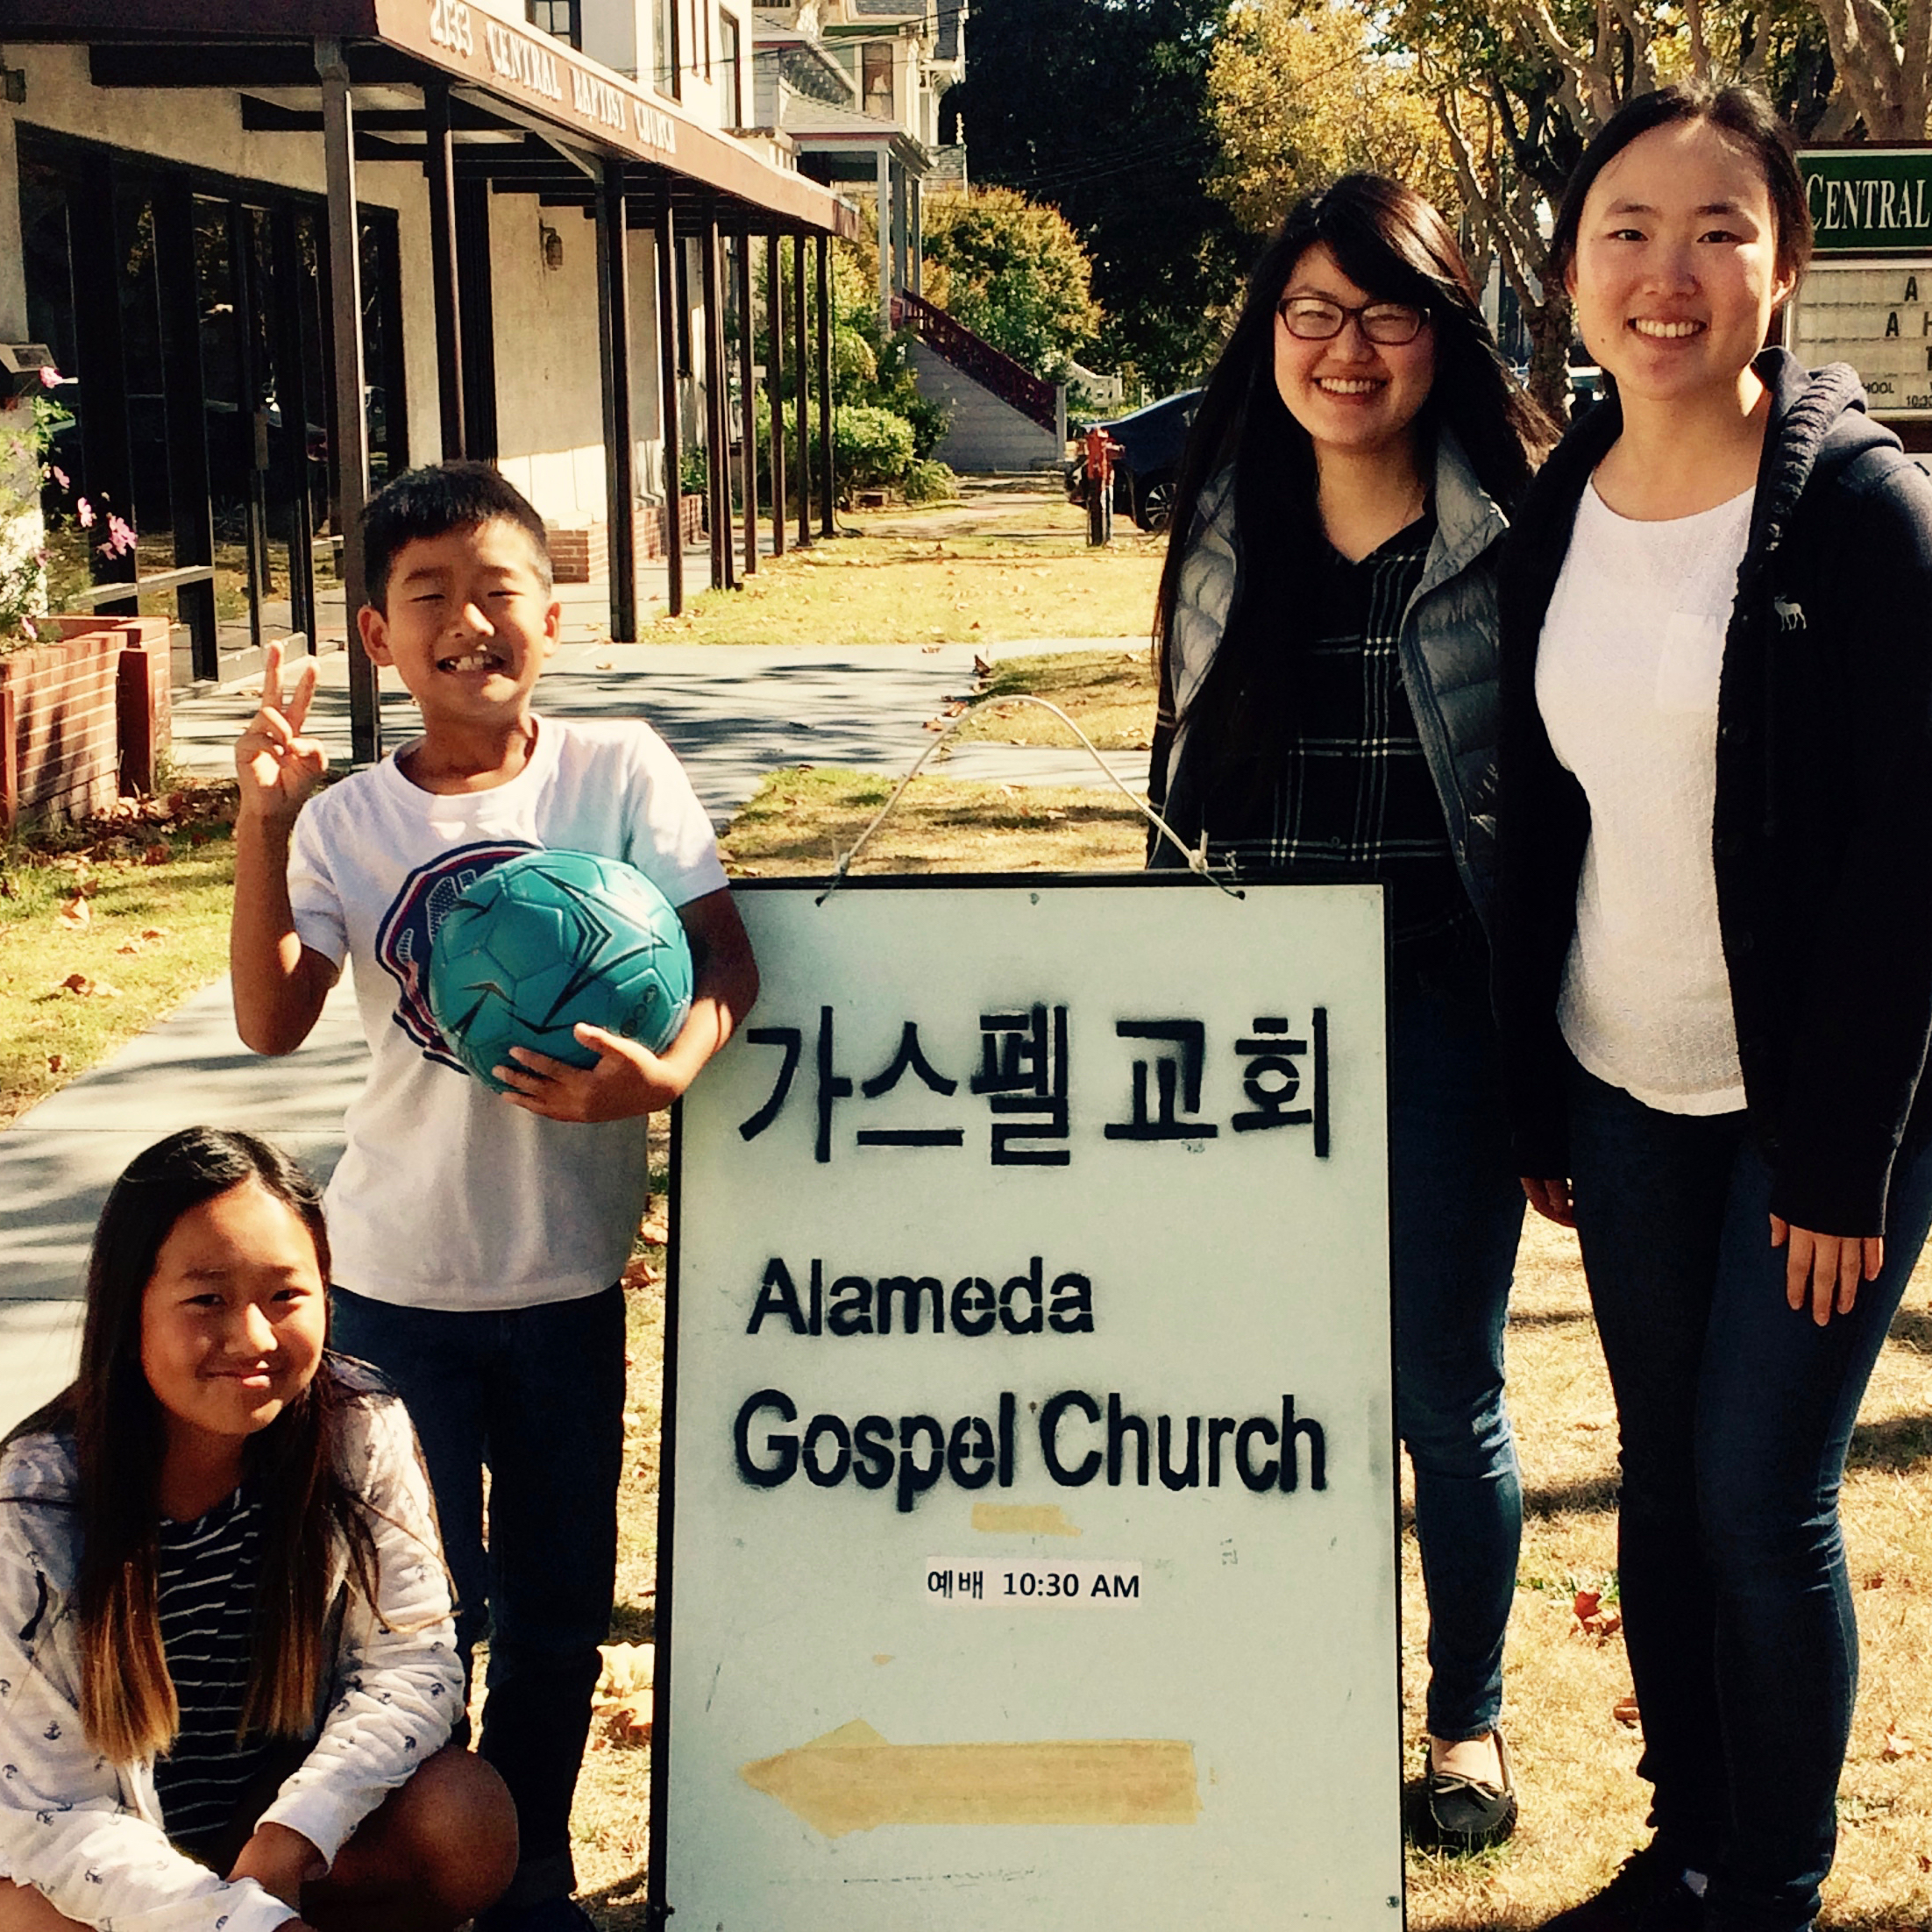 Our Partner Churches - These are the churches where our volunteers serve every week.